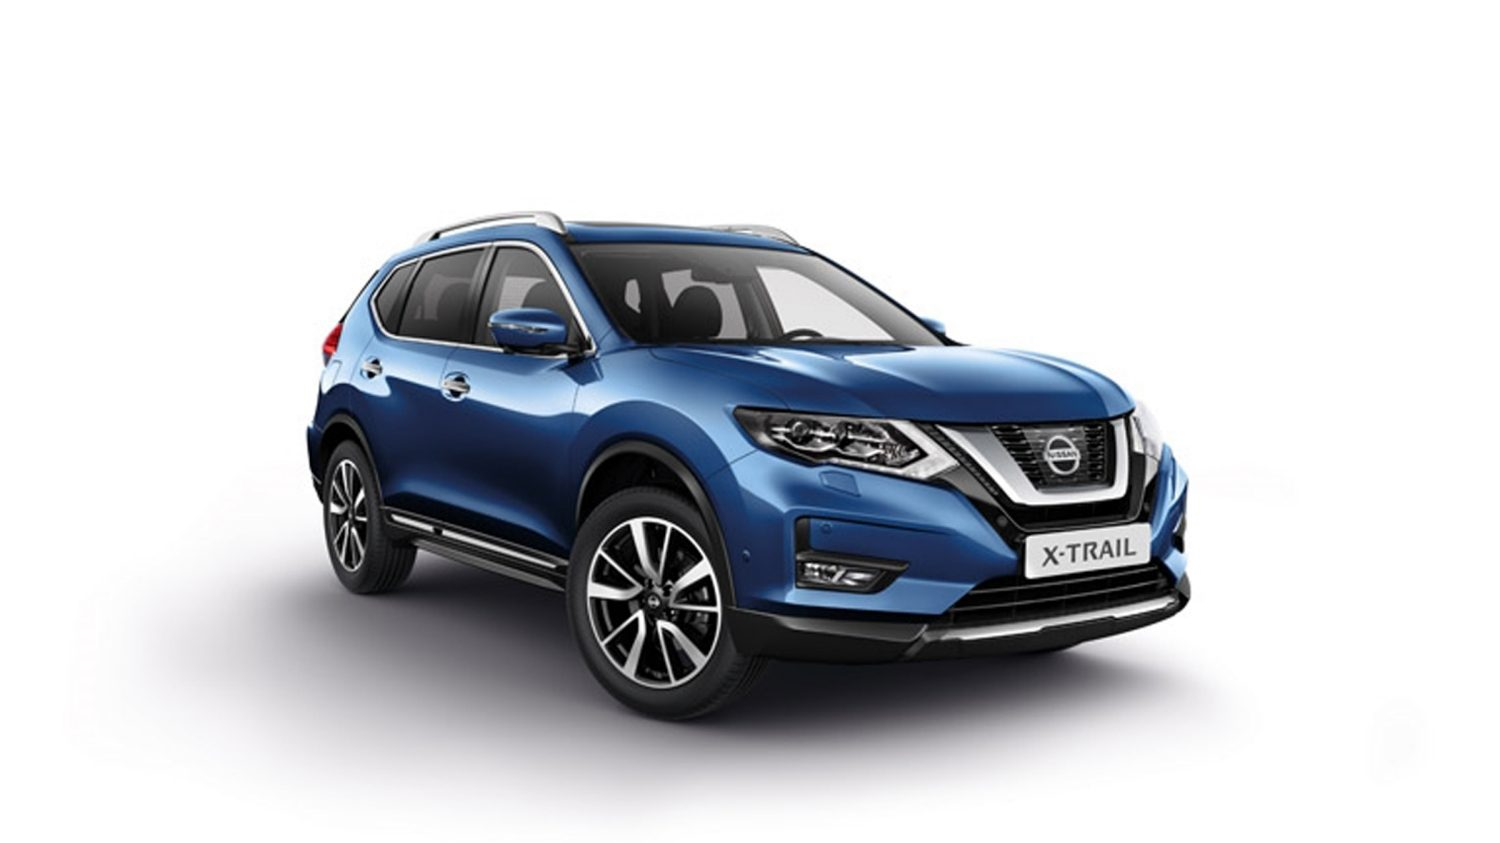 Nissan X-TRAIL, plano frontal completo